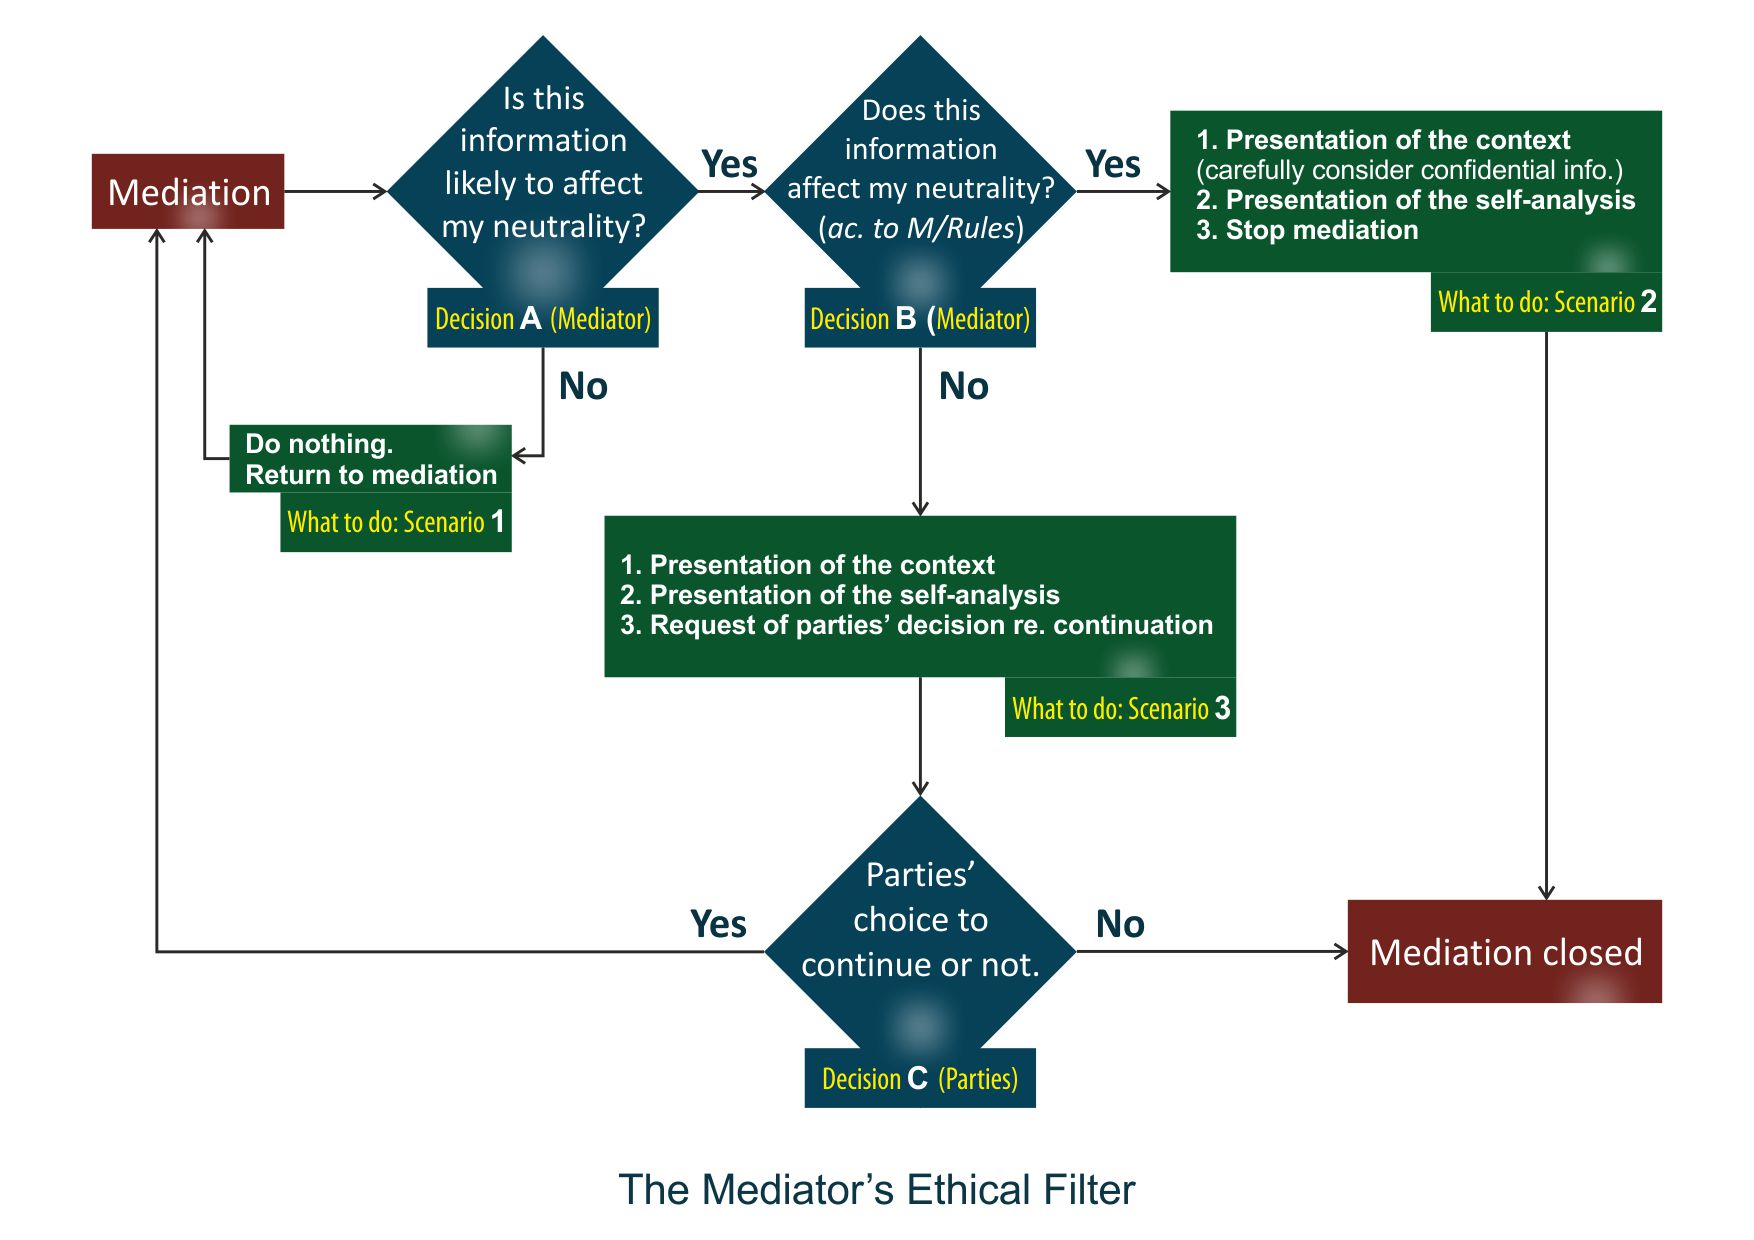 deception and ethics in mediation basic About the ethics of deception in bargaining because  building on some basic  assumptions and bearing  transcript of the atlas case, where the mediator.